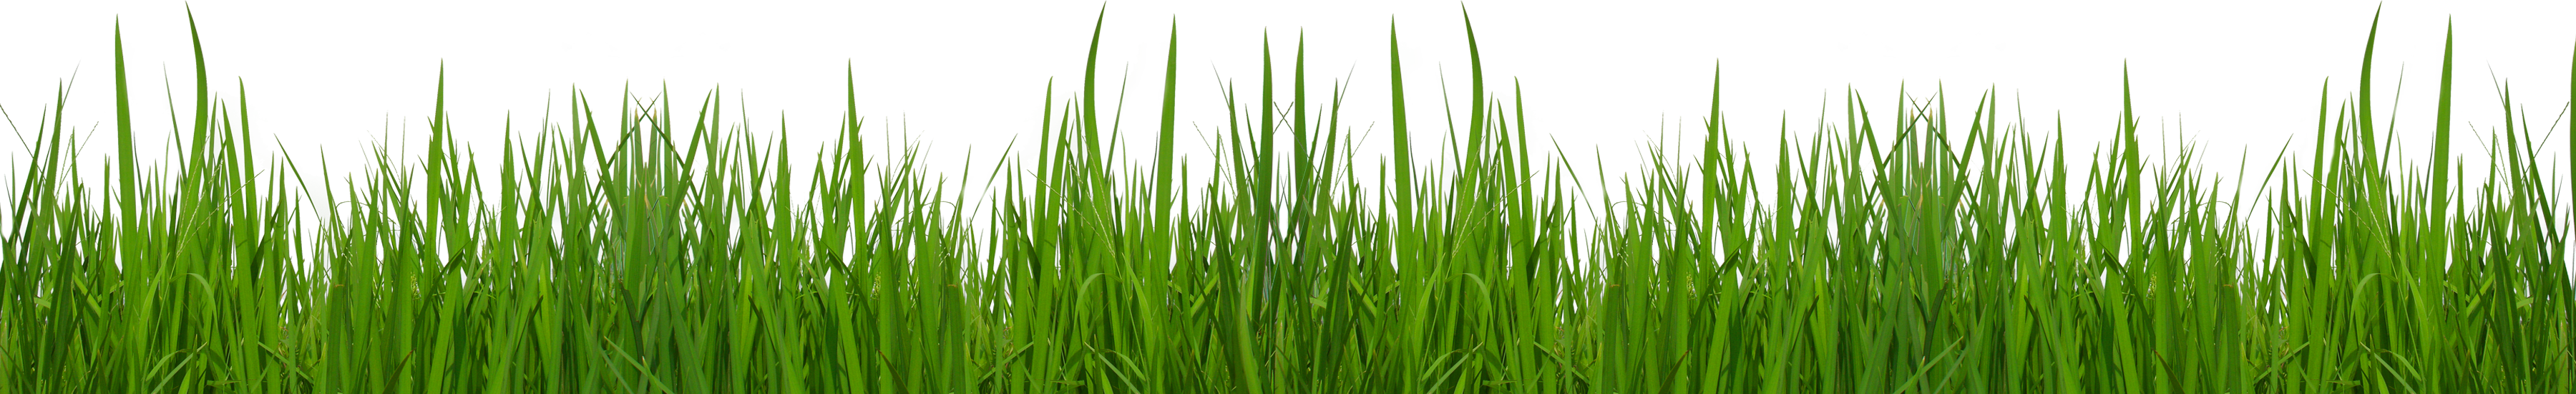 Free grass clip art pictures